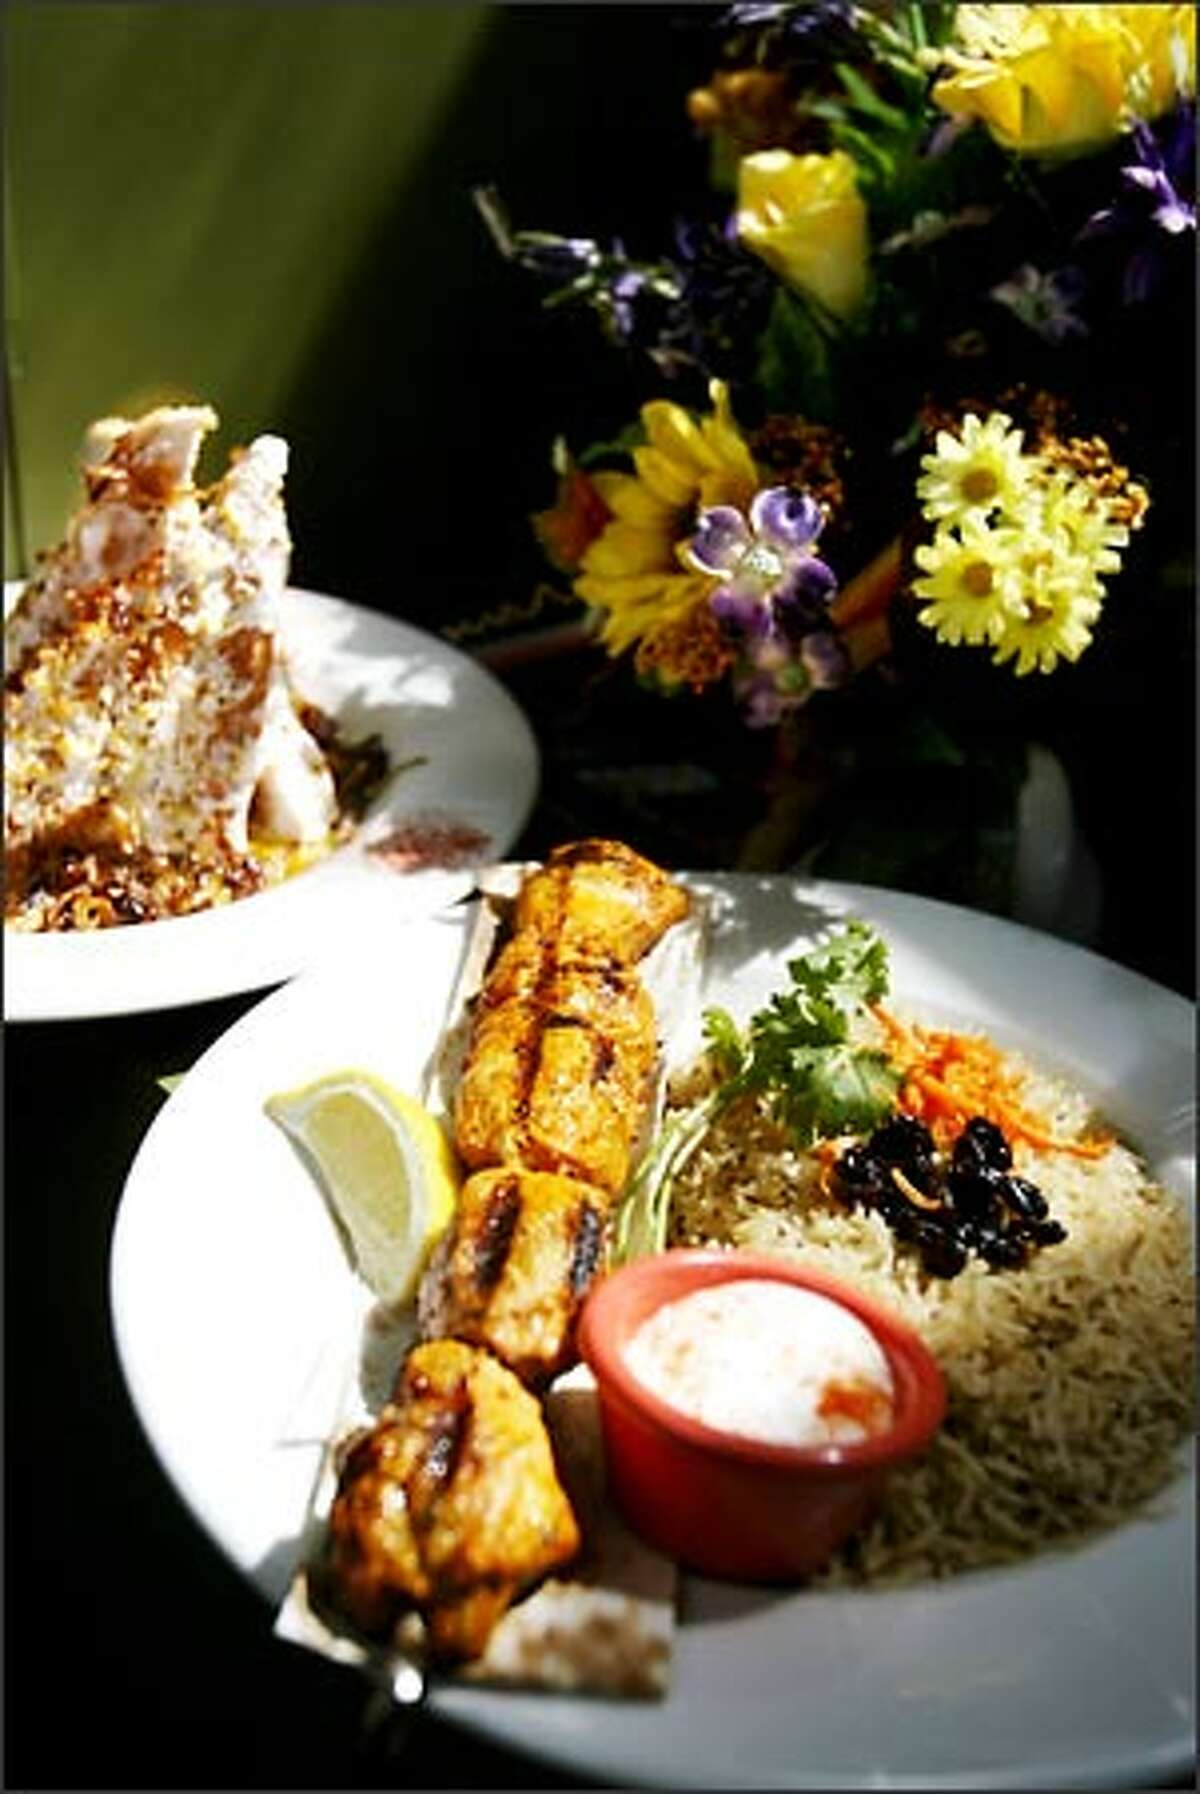 Bamiyan's menu includes, in the foreground, Murgh kebab (marinated, grilled white-meat chicken) and Quruti (Afghan bread coated in yogurt-garlic sauce), rear left.